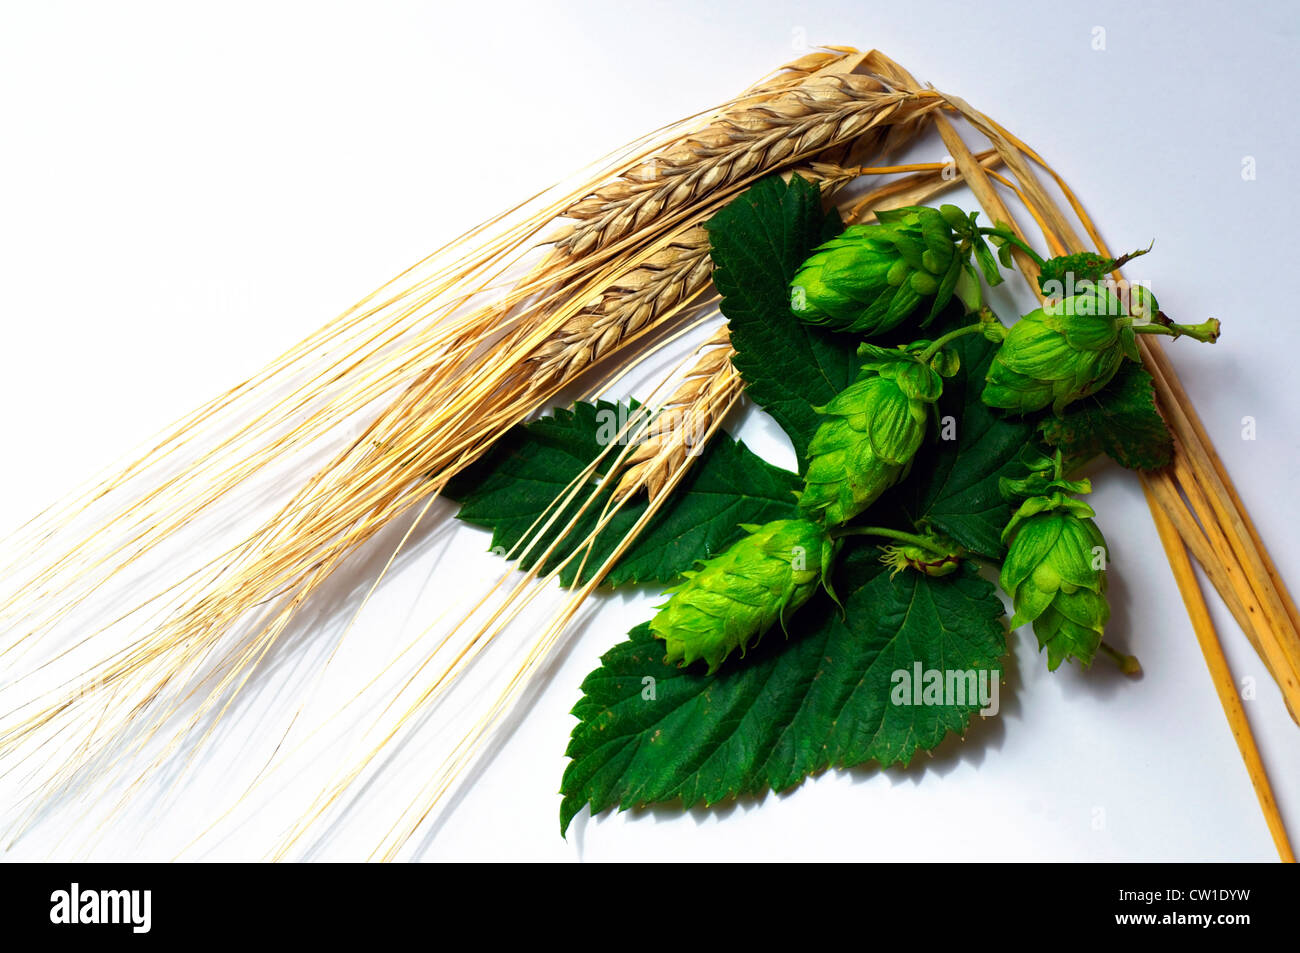 Ripe Barley and Hops, the two main ingredients of beer. - Stock Image